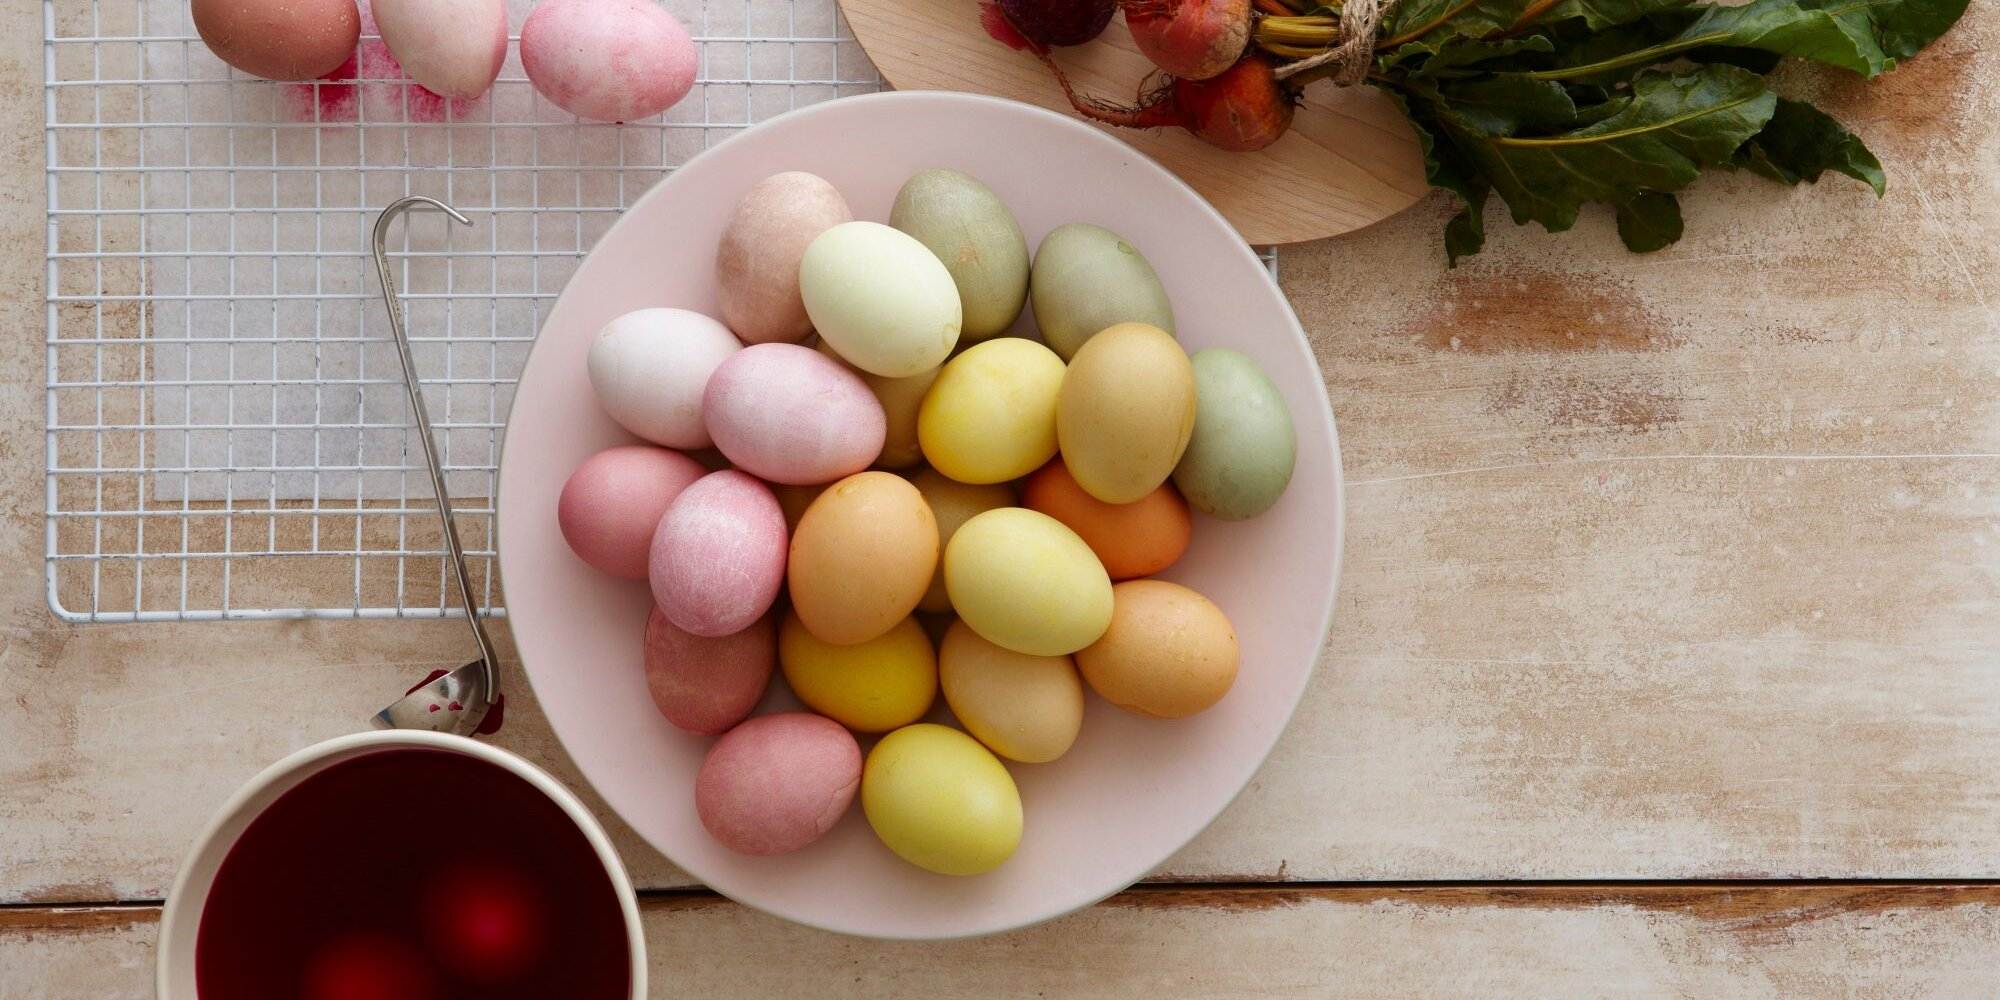 How to Make 9 Natural Easter Egg Dyes